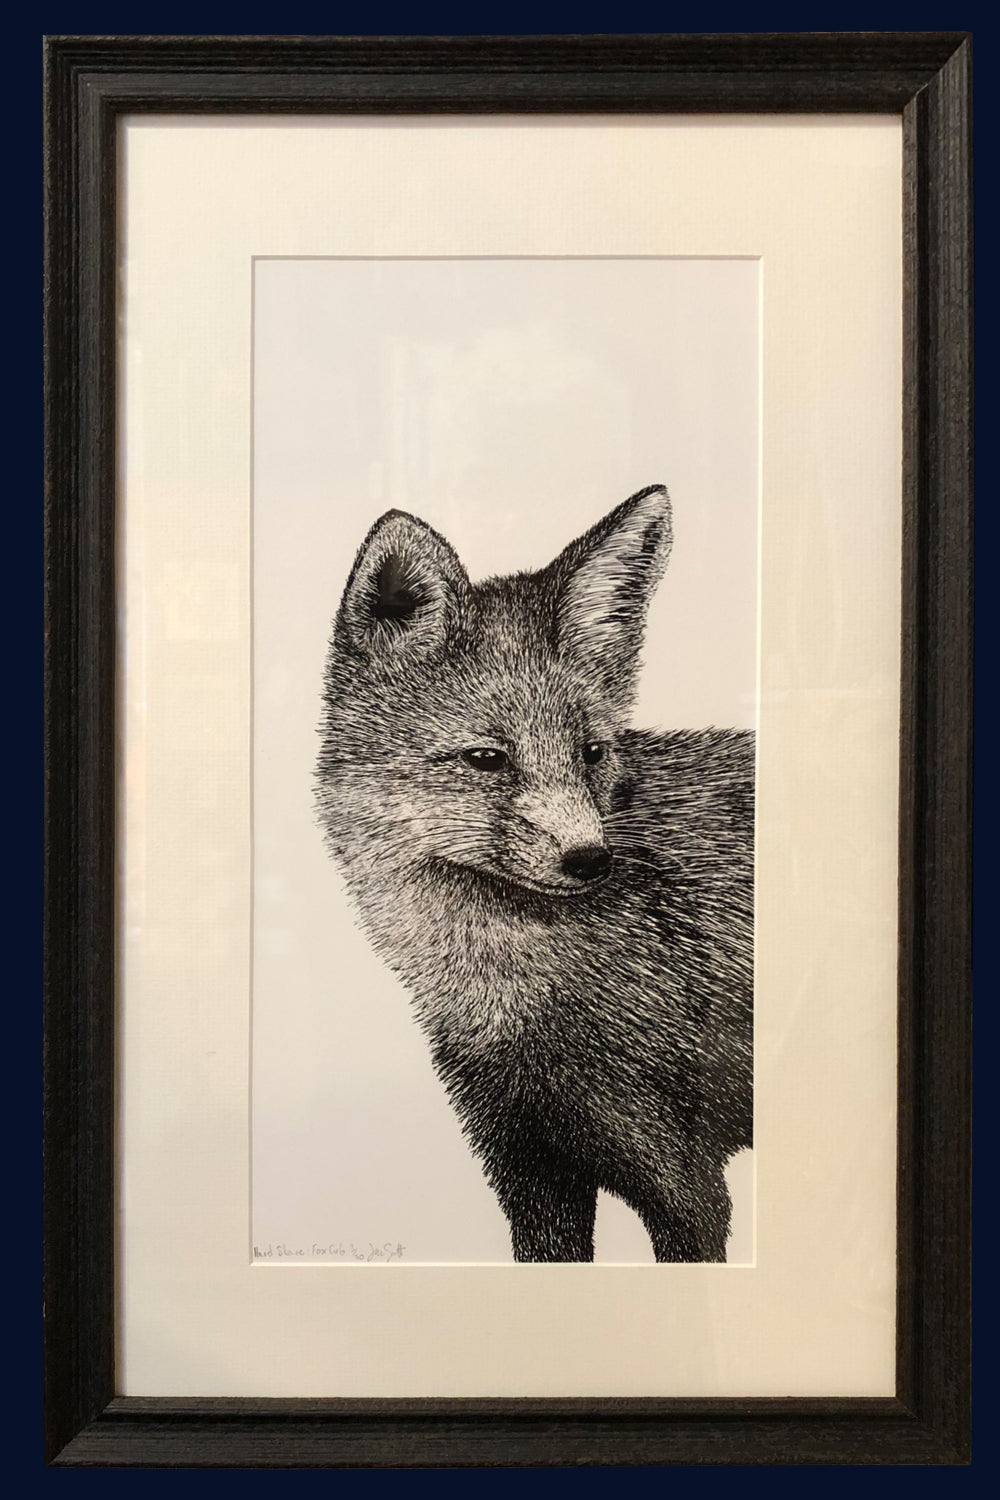 Framed: A Hard Stare: Fox Cub.  Limited Edition of 50 Fine Art Print